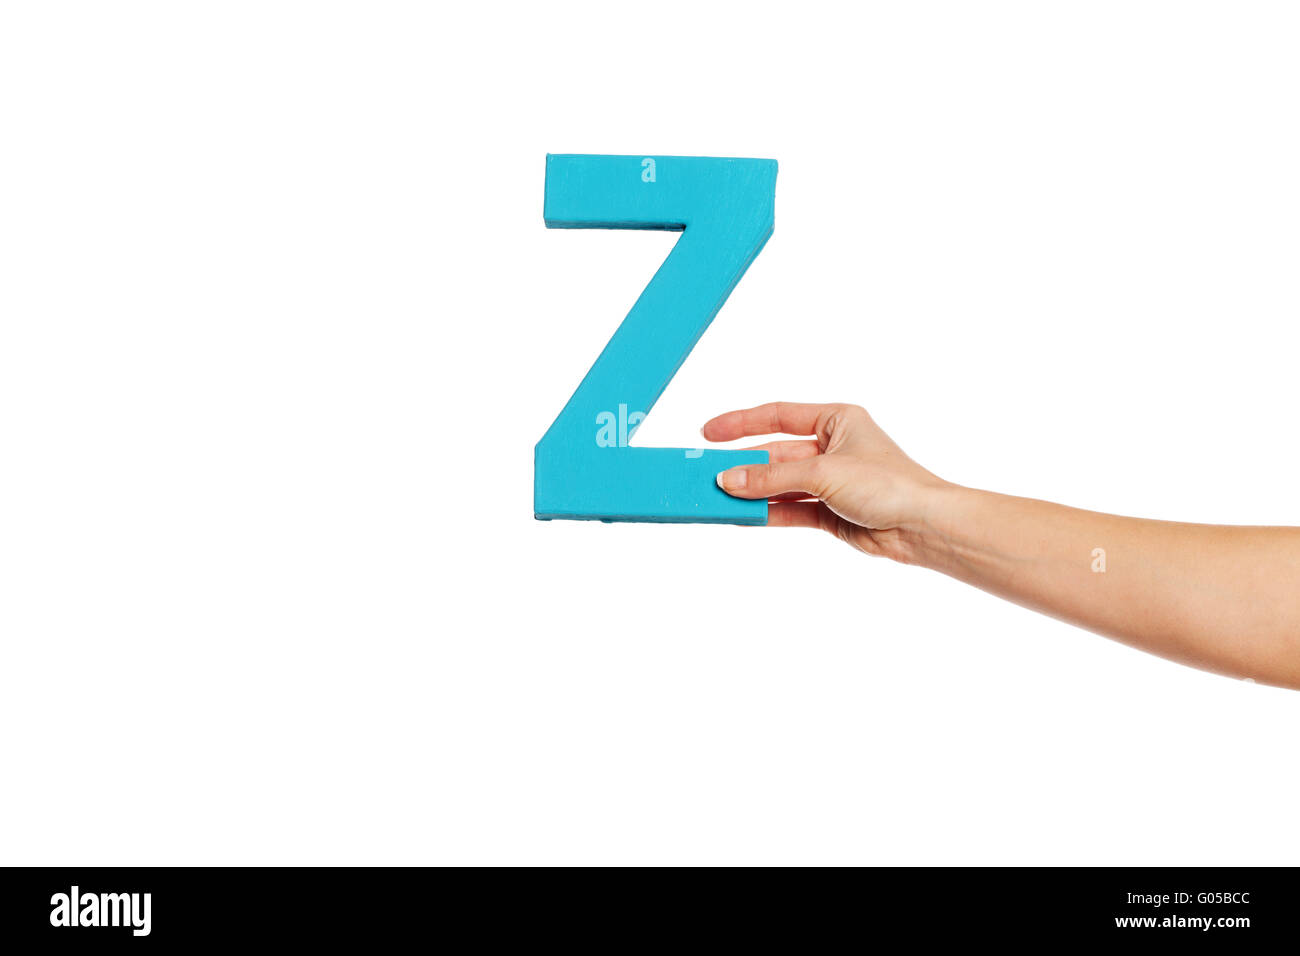 hand holding up the letter Z from the right - Stock Image